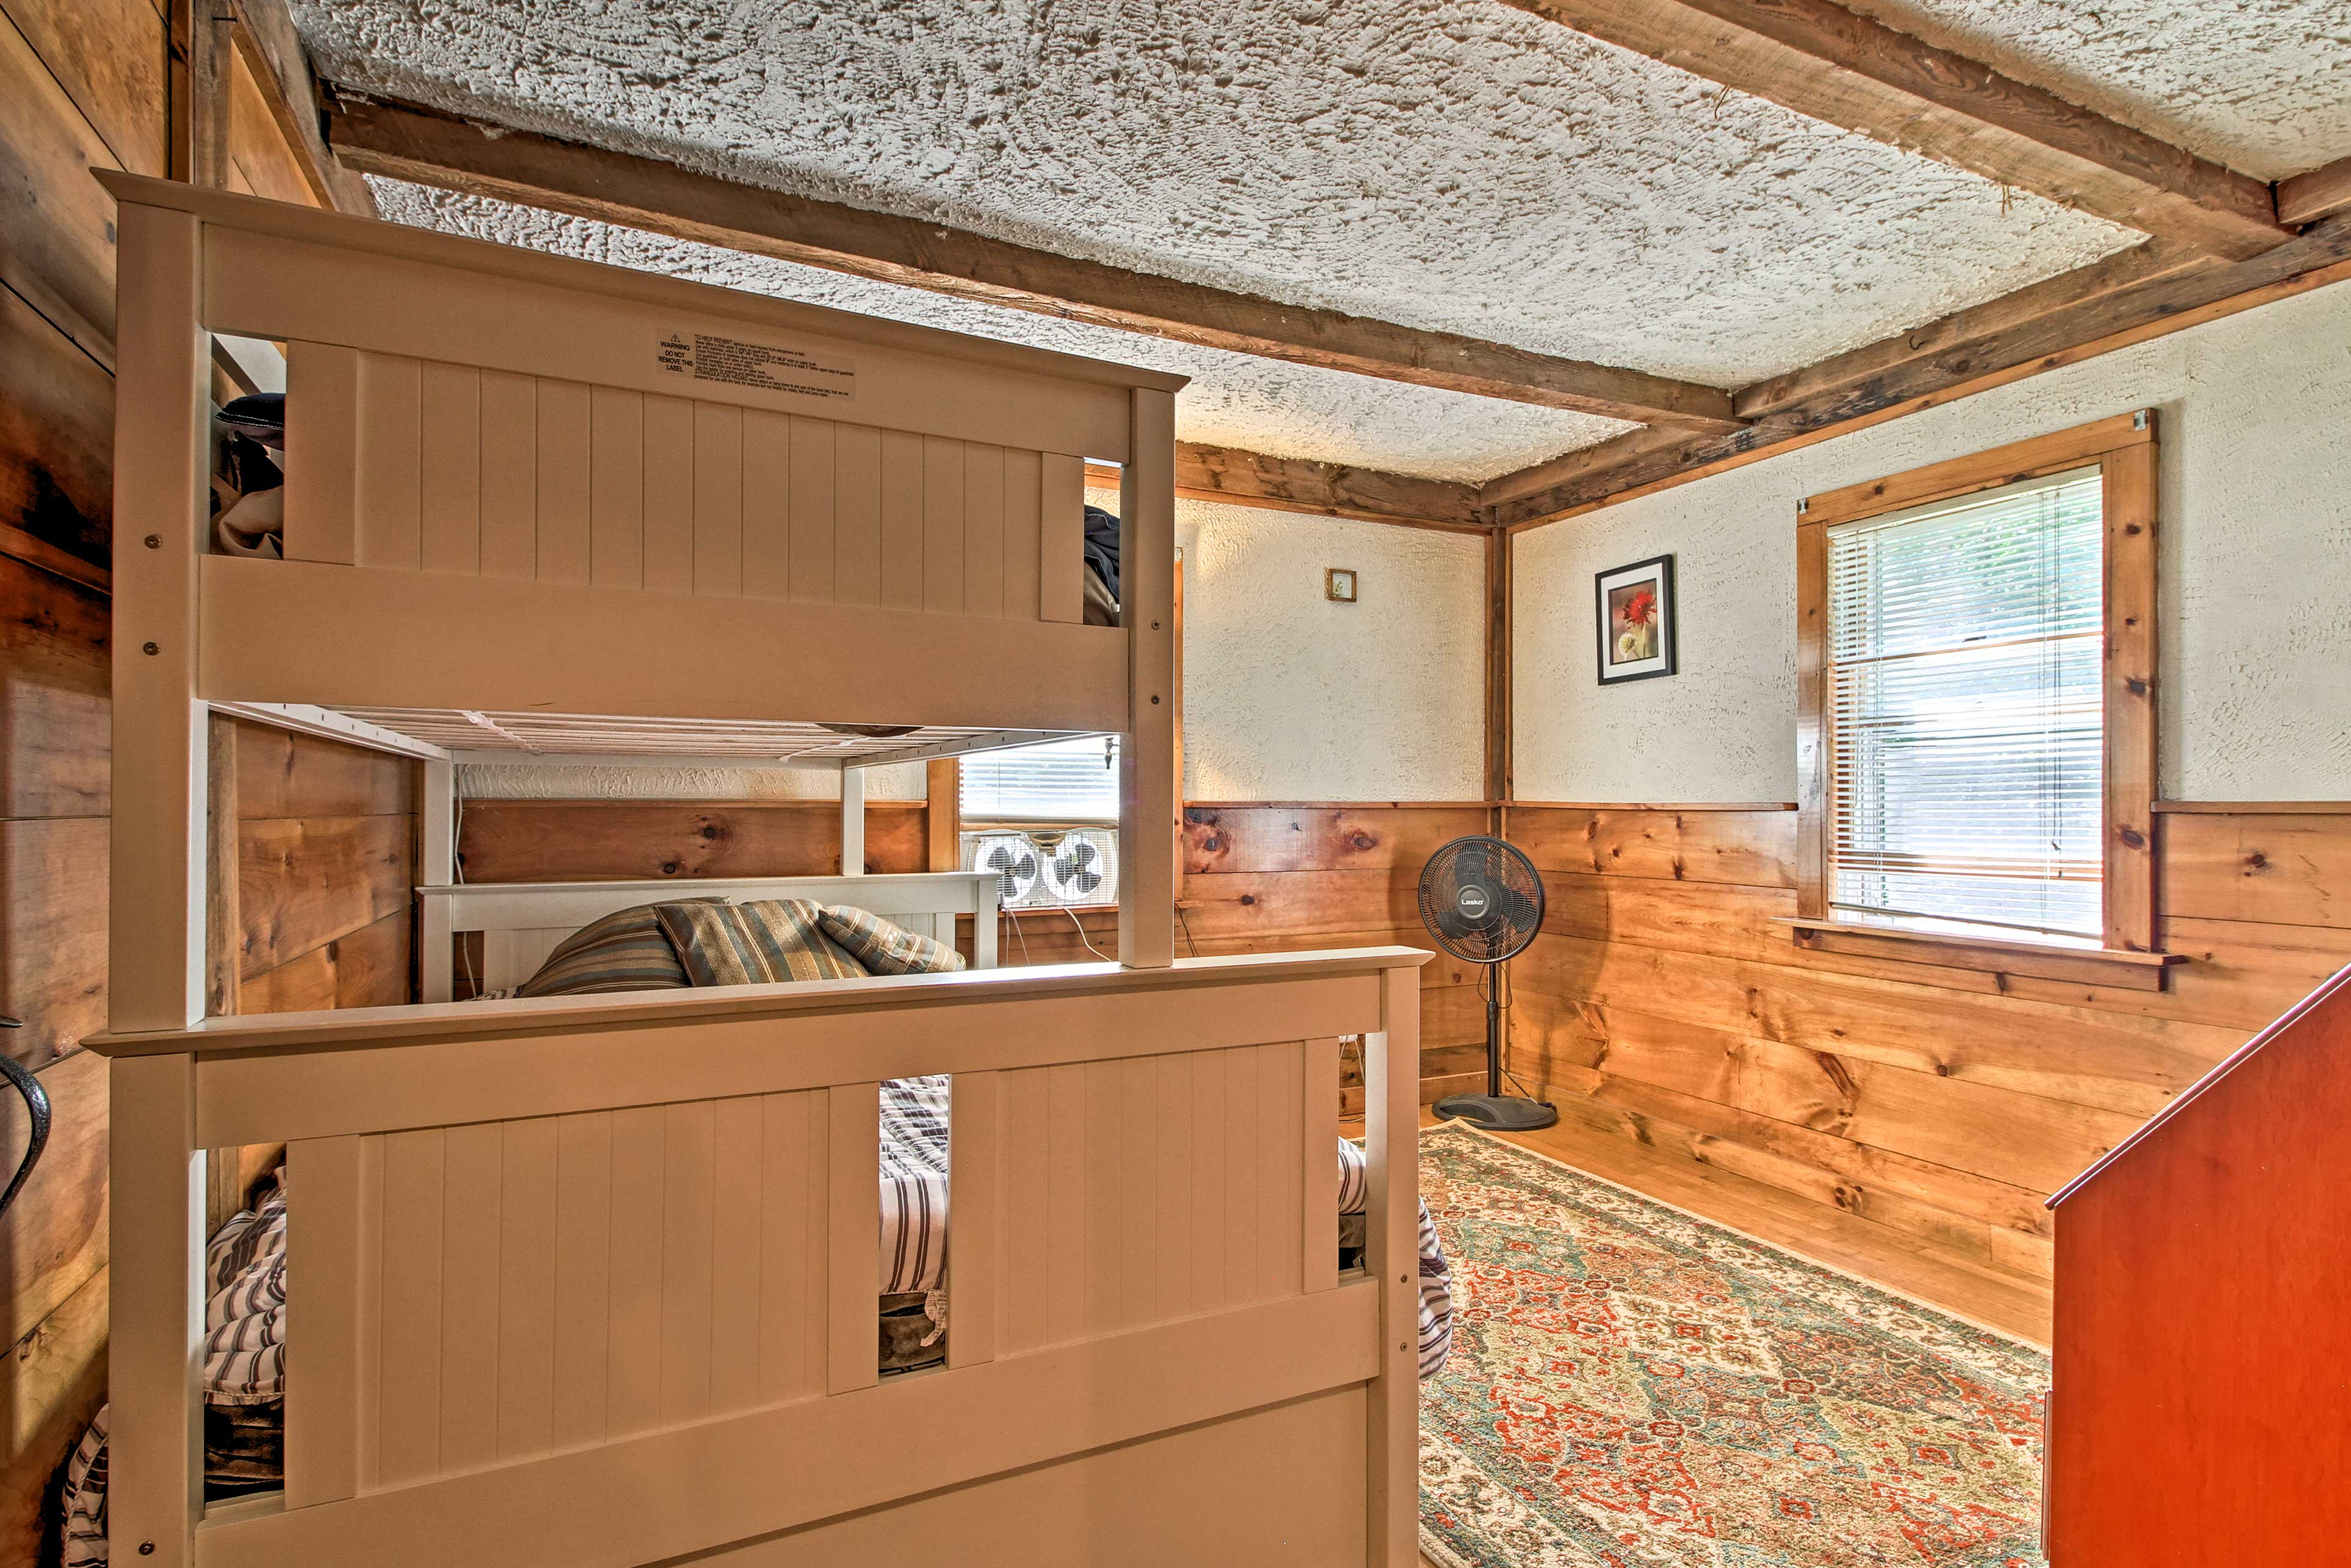 The second bedroom offers a twin-over-full bunk bed.